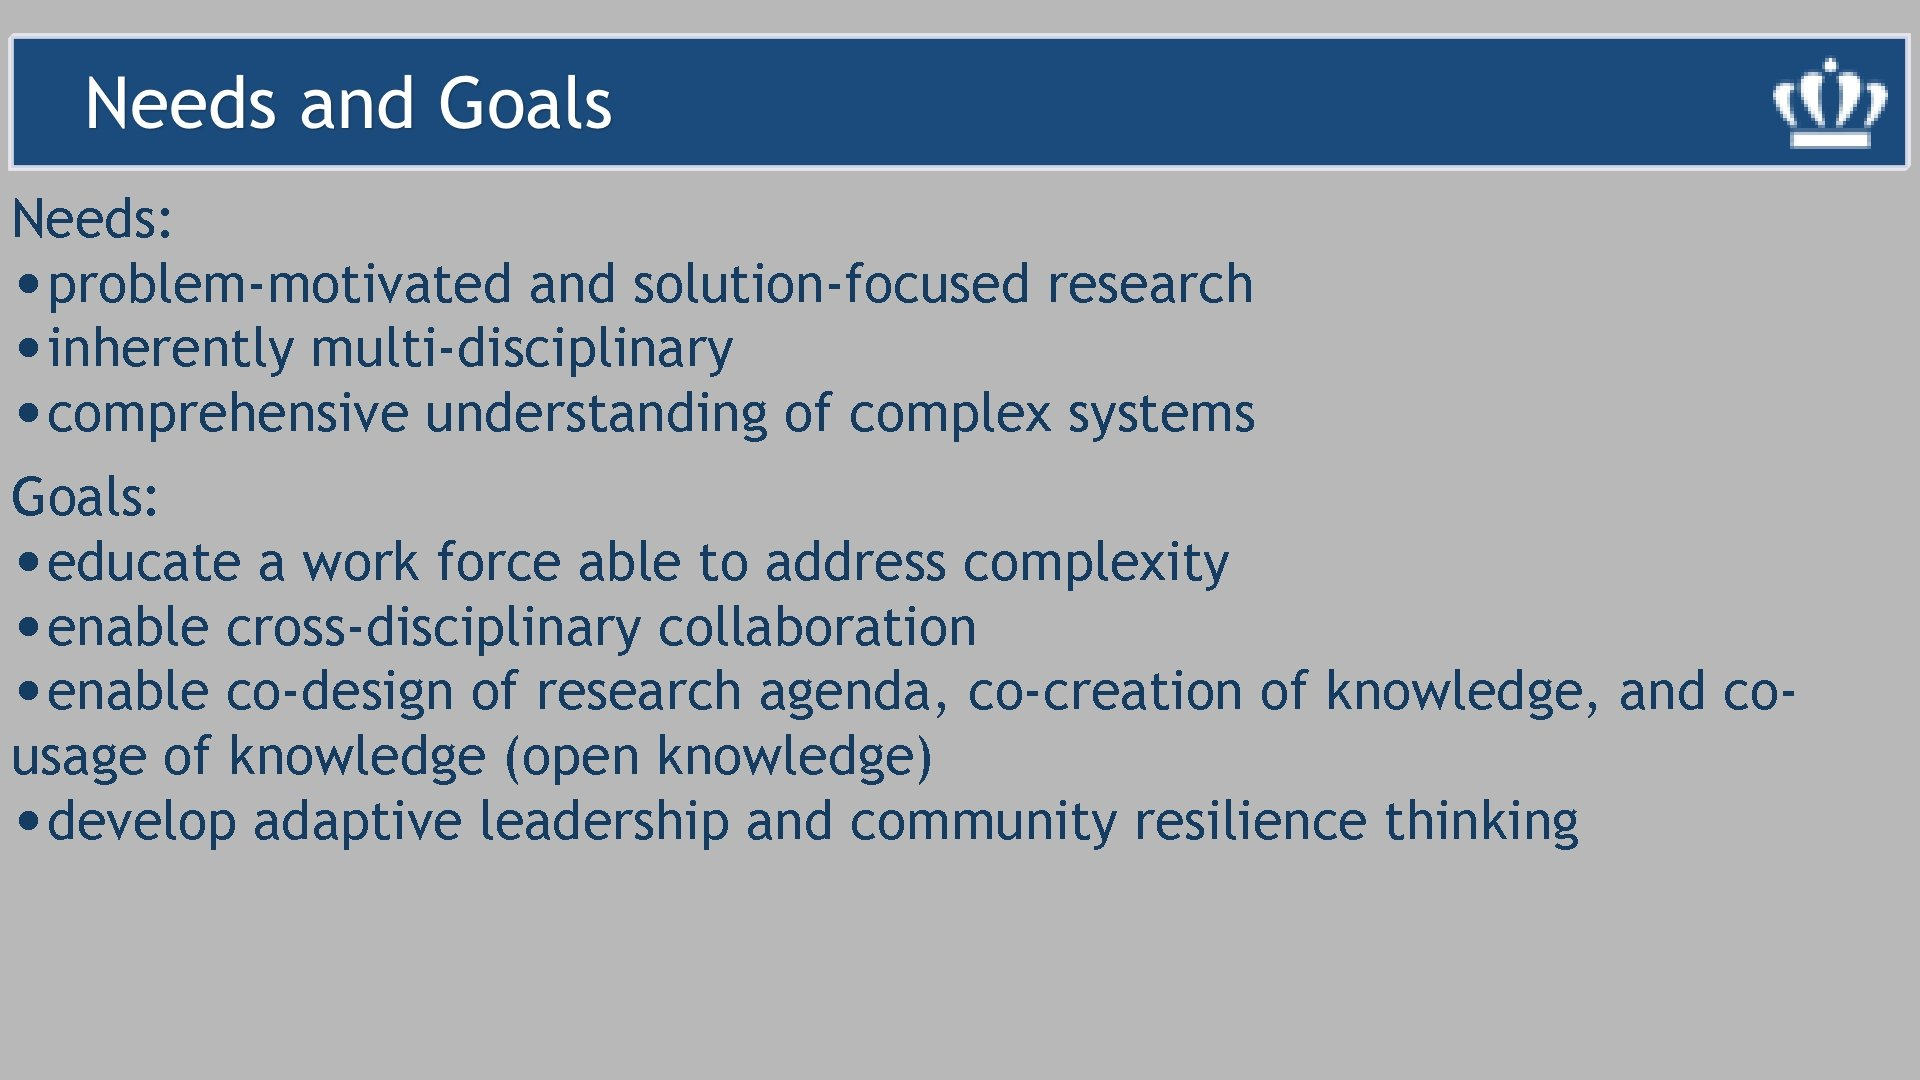 Needs: • problem-motivated and solution-focused research • inherently multi-disciplinary • comprehensive understanding of complex